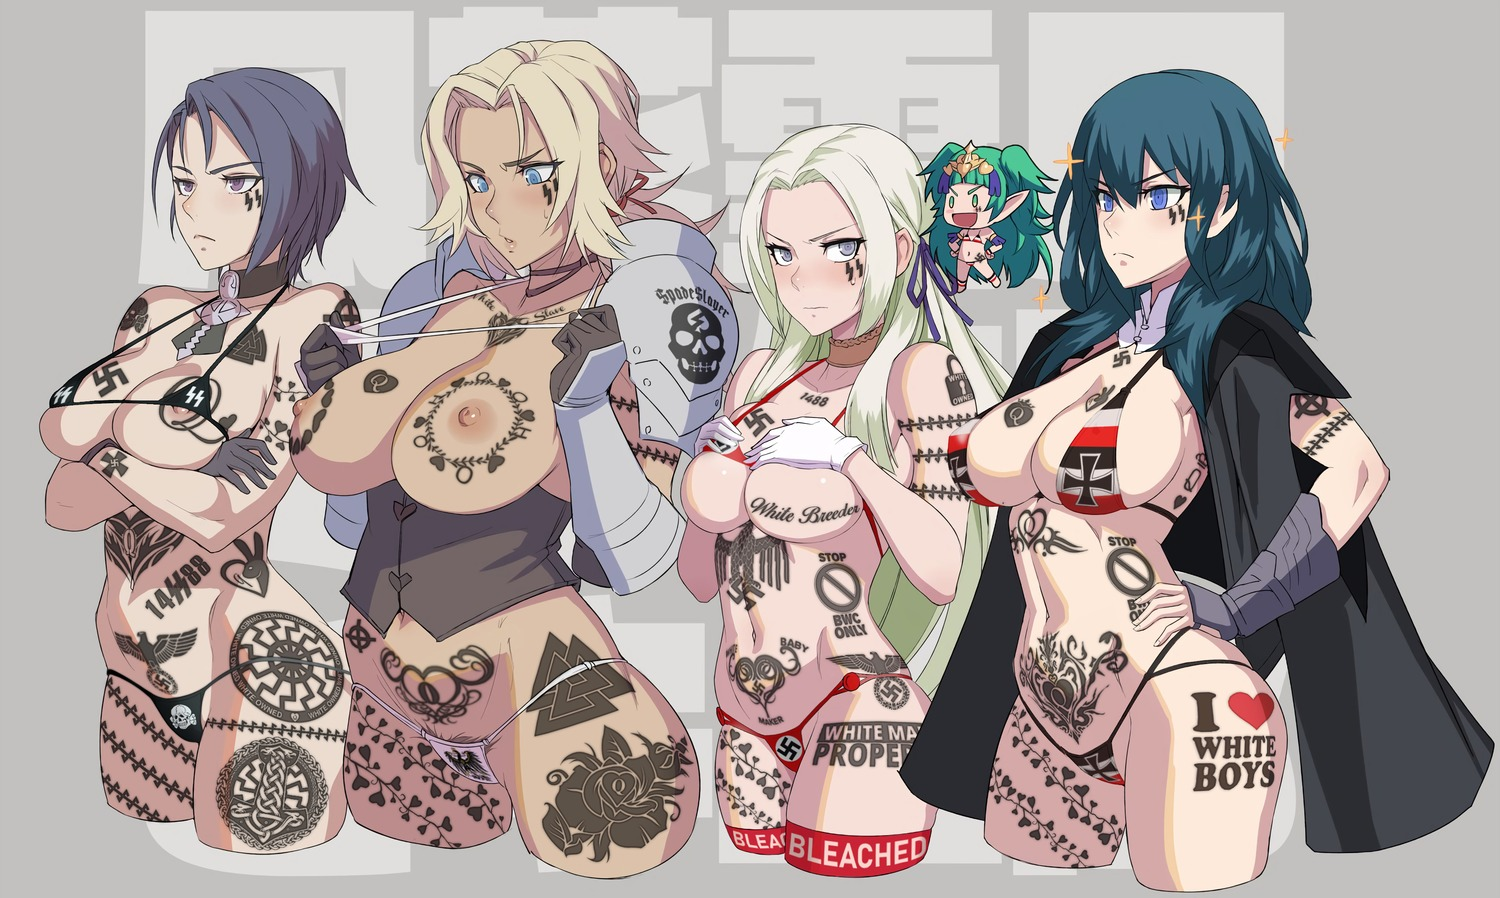 1488 5girls aryan_female bikini black_bikini black_choker black_cloak black_sun black_sun_tattoo bleachbunny blonde_hair blue_bikini blue_eyes blue_hair blush breast_rest breasts breast_suppress breast_tattoo brown_gloves bwc_only byleth_(fire_emblem) byleth_(fire_emblem)_(female) catherine_(fire_emblem) celtic_cross chibi choker cloak closed_mouth crossed_arms :d detached_collar edelgard embarrassed female_pubic_hair fire_emblem fire_emblem_three_houses fire_emblem:_three_houses gloves green_eyes green_hair grey_background grey_gloves hair_ribbon hand_on_hip hands_up heart_vine_tattoo highres i_heart_white_boys large_breasts long_hair looking_at_viewer many_tattoos medium_breasts medium_hair micro_bikini mikoyan mini_necktie multiple_girls navel nipples nipple_slip open_mouth pink_bikini ponytail pubic_hair purple_eyes purple_hair queen_of_hearts_tattoo red_ribbon reichsadler ribbon ringed_eyes shamir_nevrand short_hair smile sothis_(fire_emblem) spade_slayer_tattoo sparkle ss_tattoo swastika_tattoo sweatdrop swimsuit tattoo theme_clothing thigh_highs totenkopf underbust valknut white_bikini white_breeder white_female white_owned white_slave_tattoo white_supremacy wolfsangel womb_tattoo